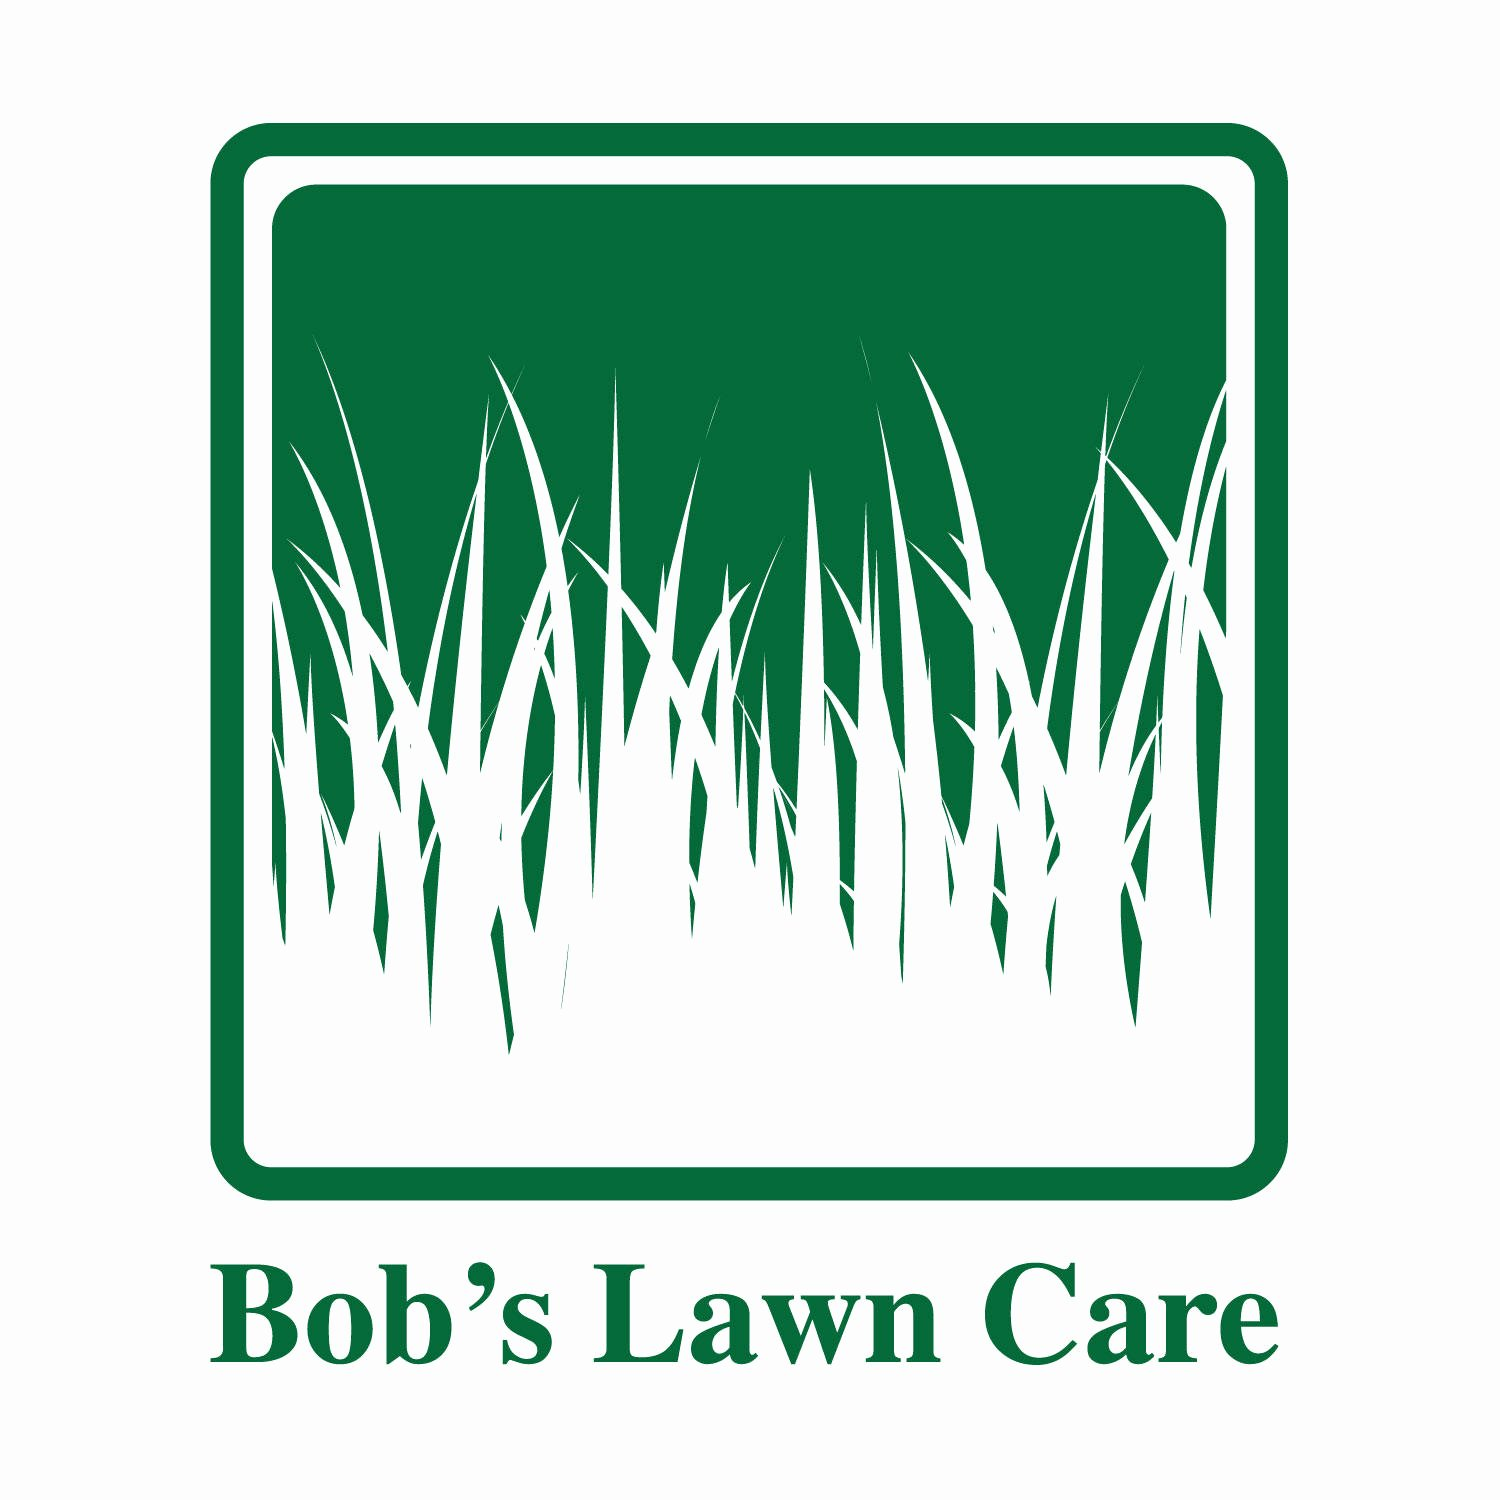 Lawn Care Business Logos Lovely Professional Lawn Care Logo Design Landscaping Logo Design